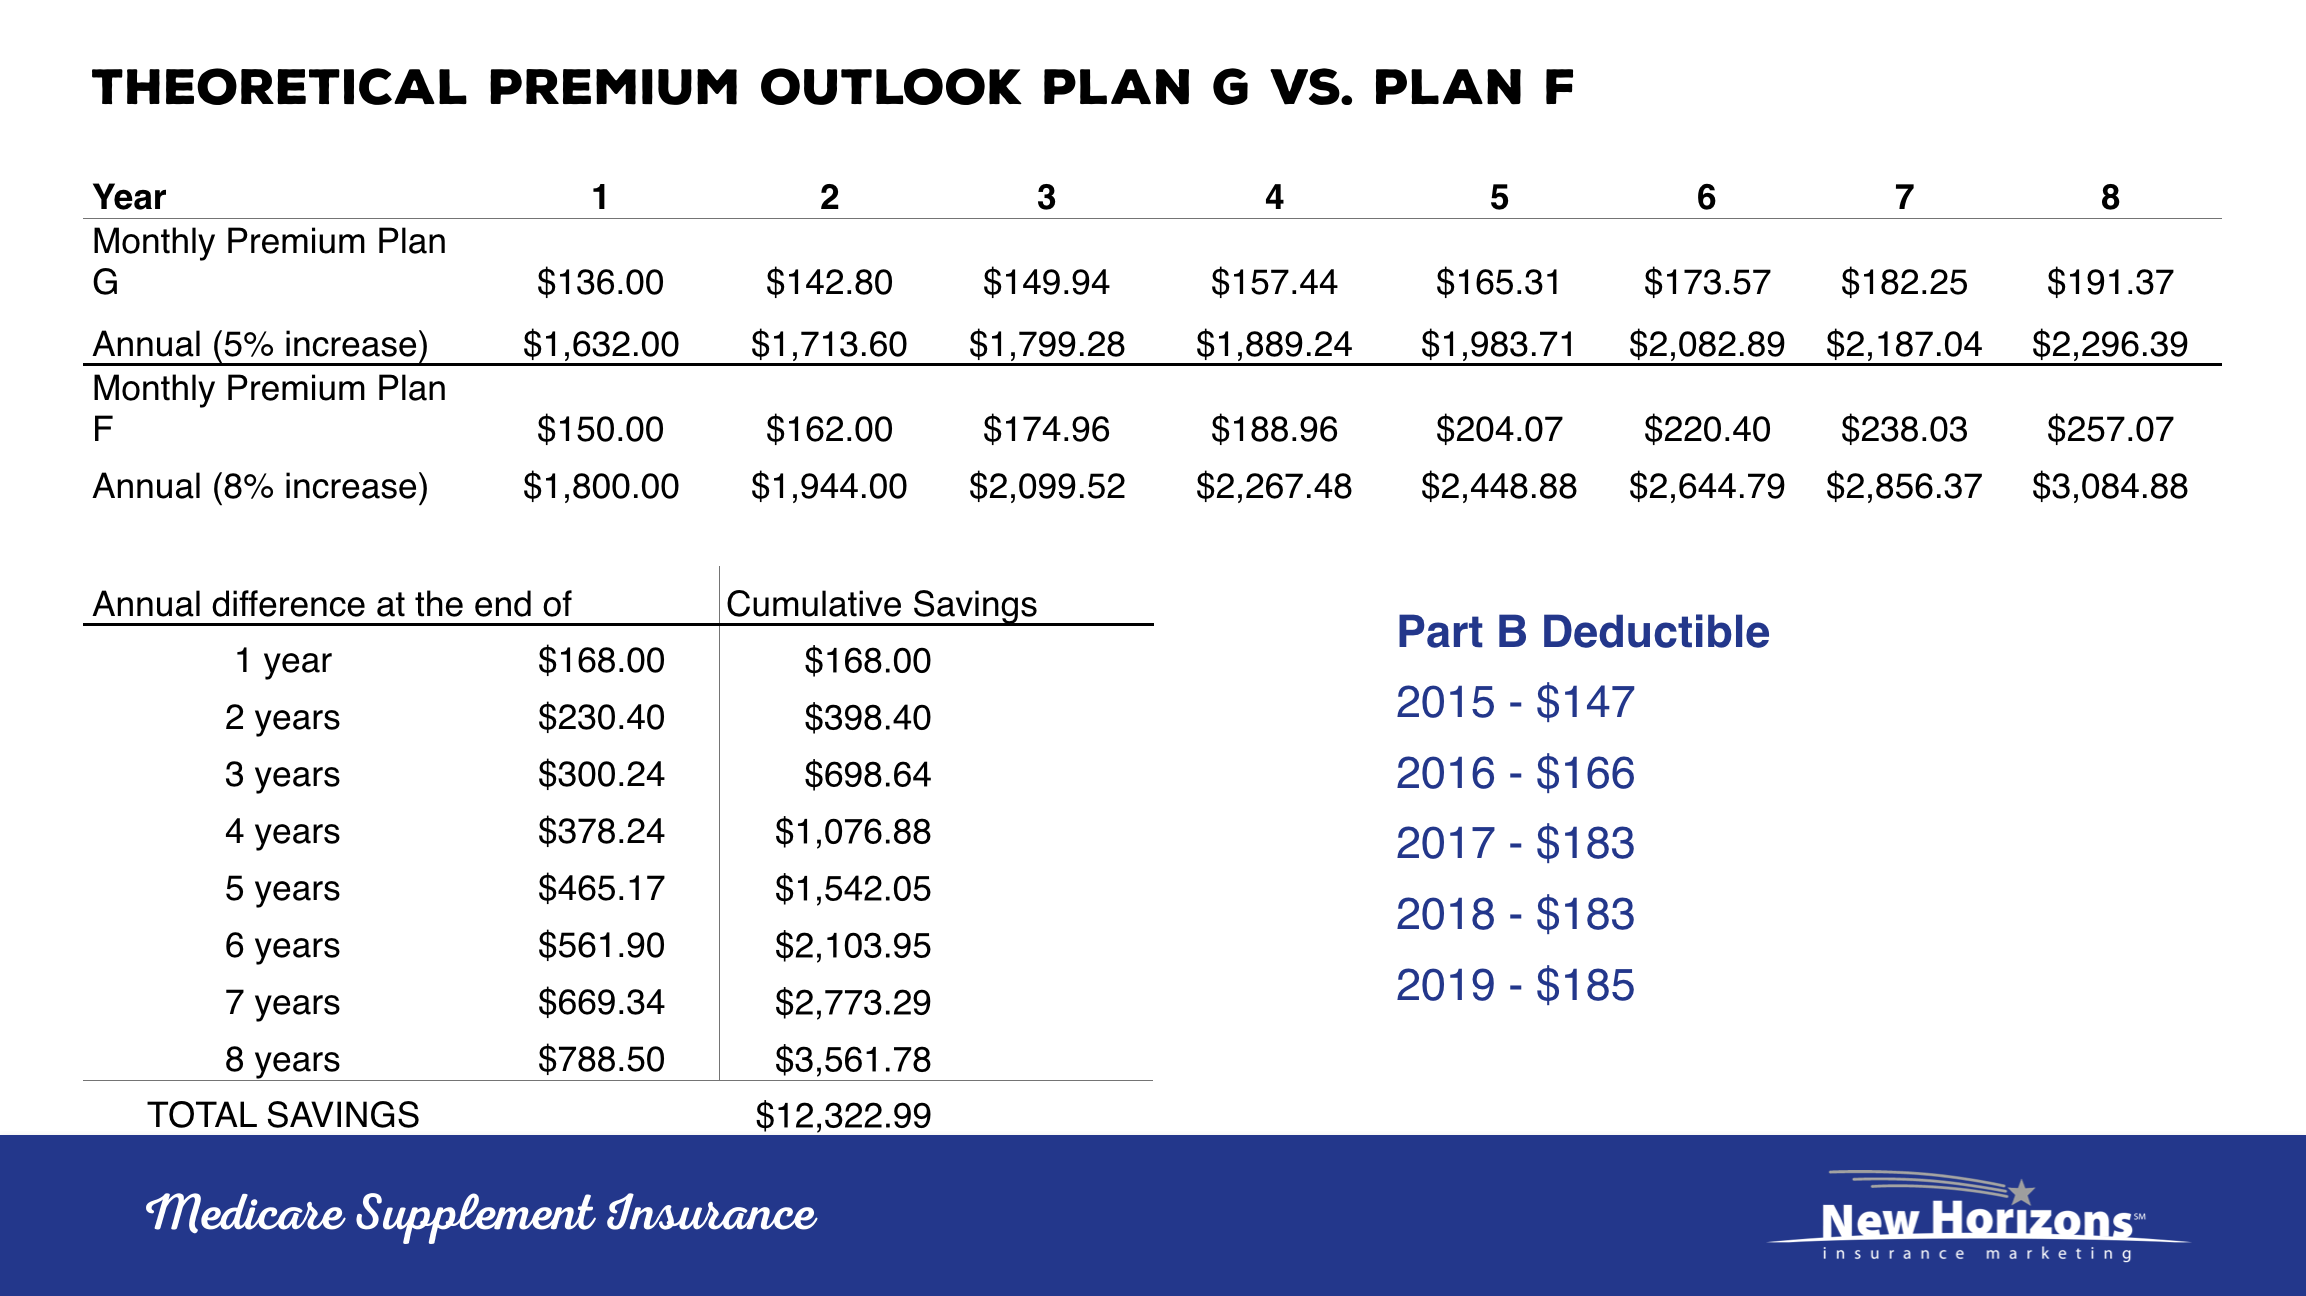 Plan G vs Plan F Premiums